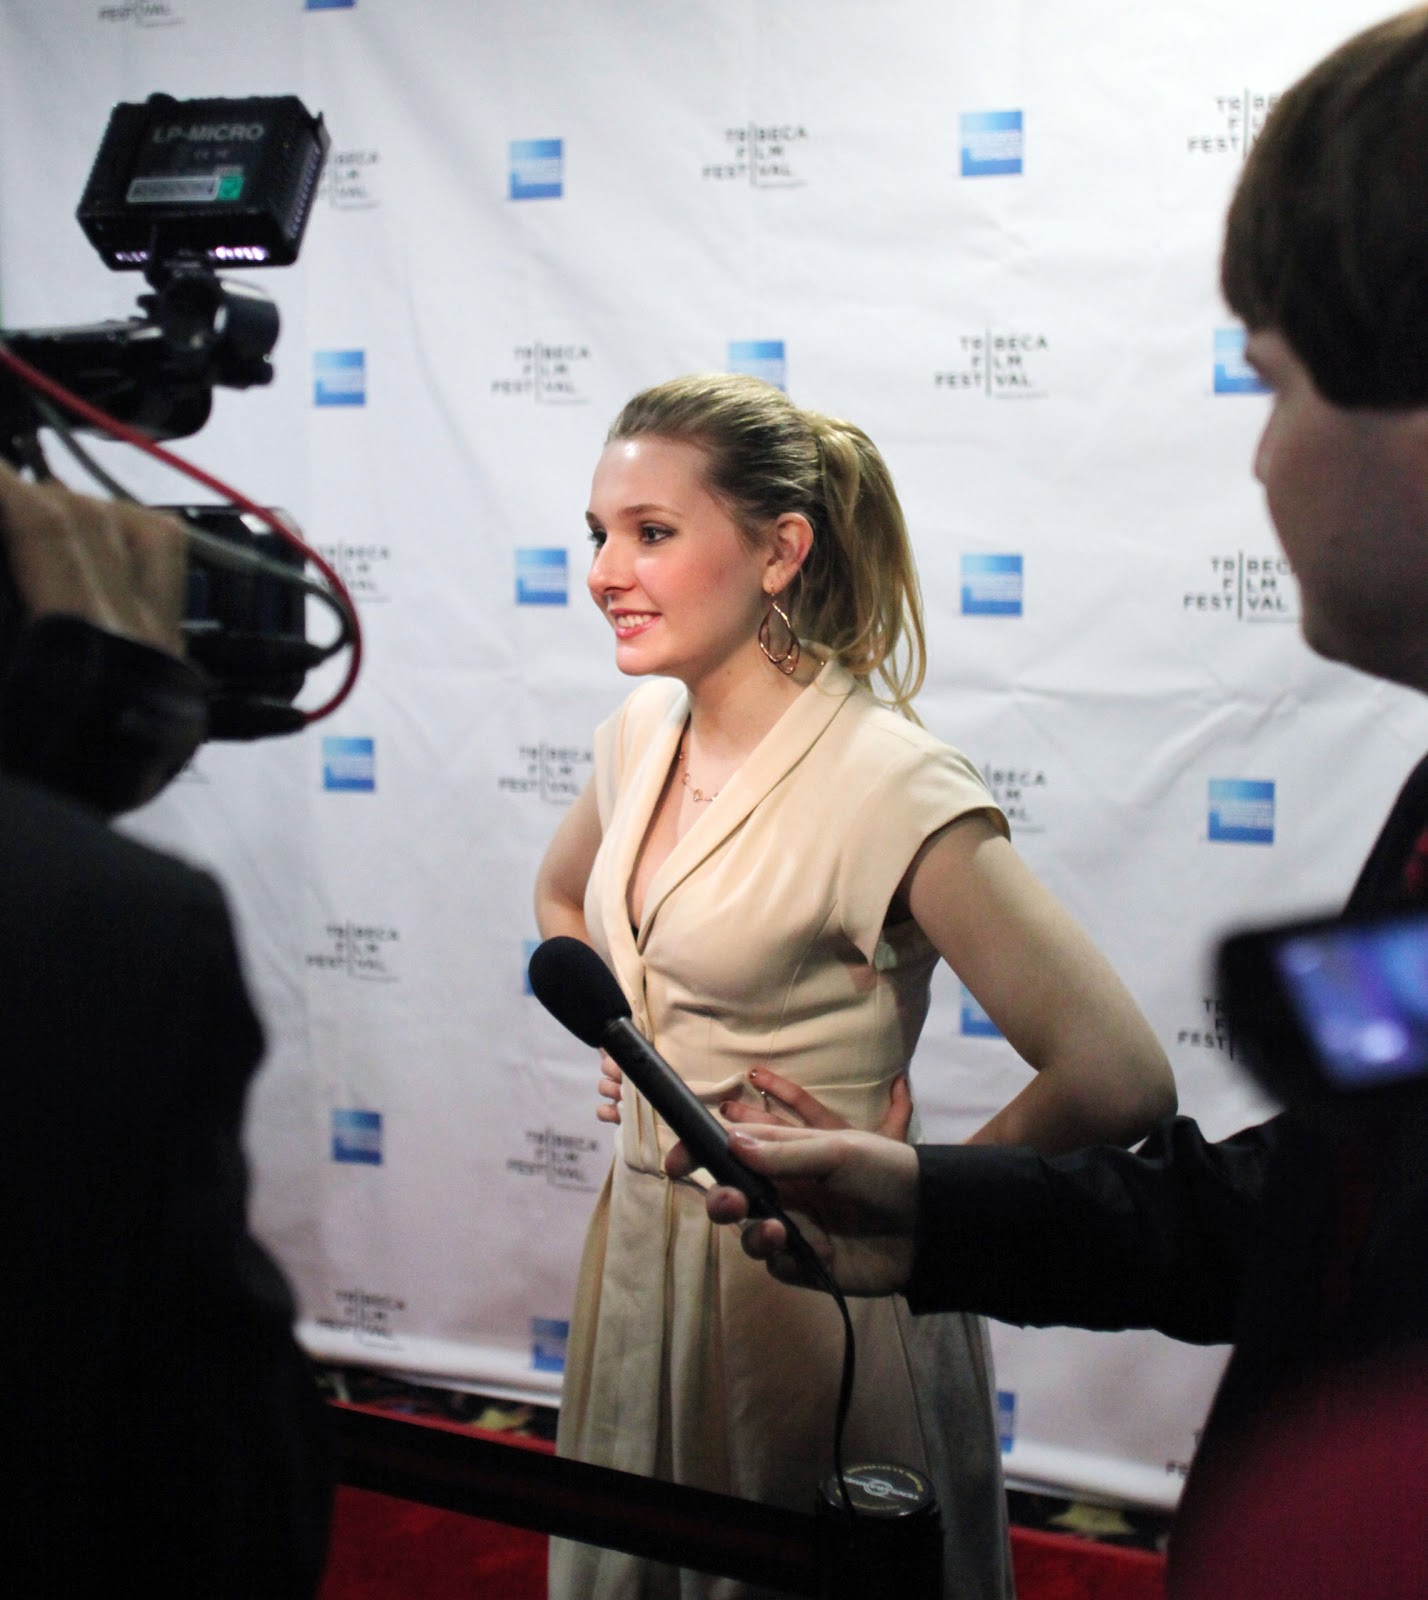 Exclusive Interviews Pictures More: Eric Live On The Air: Exclusive Interview With Abigail Breslin